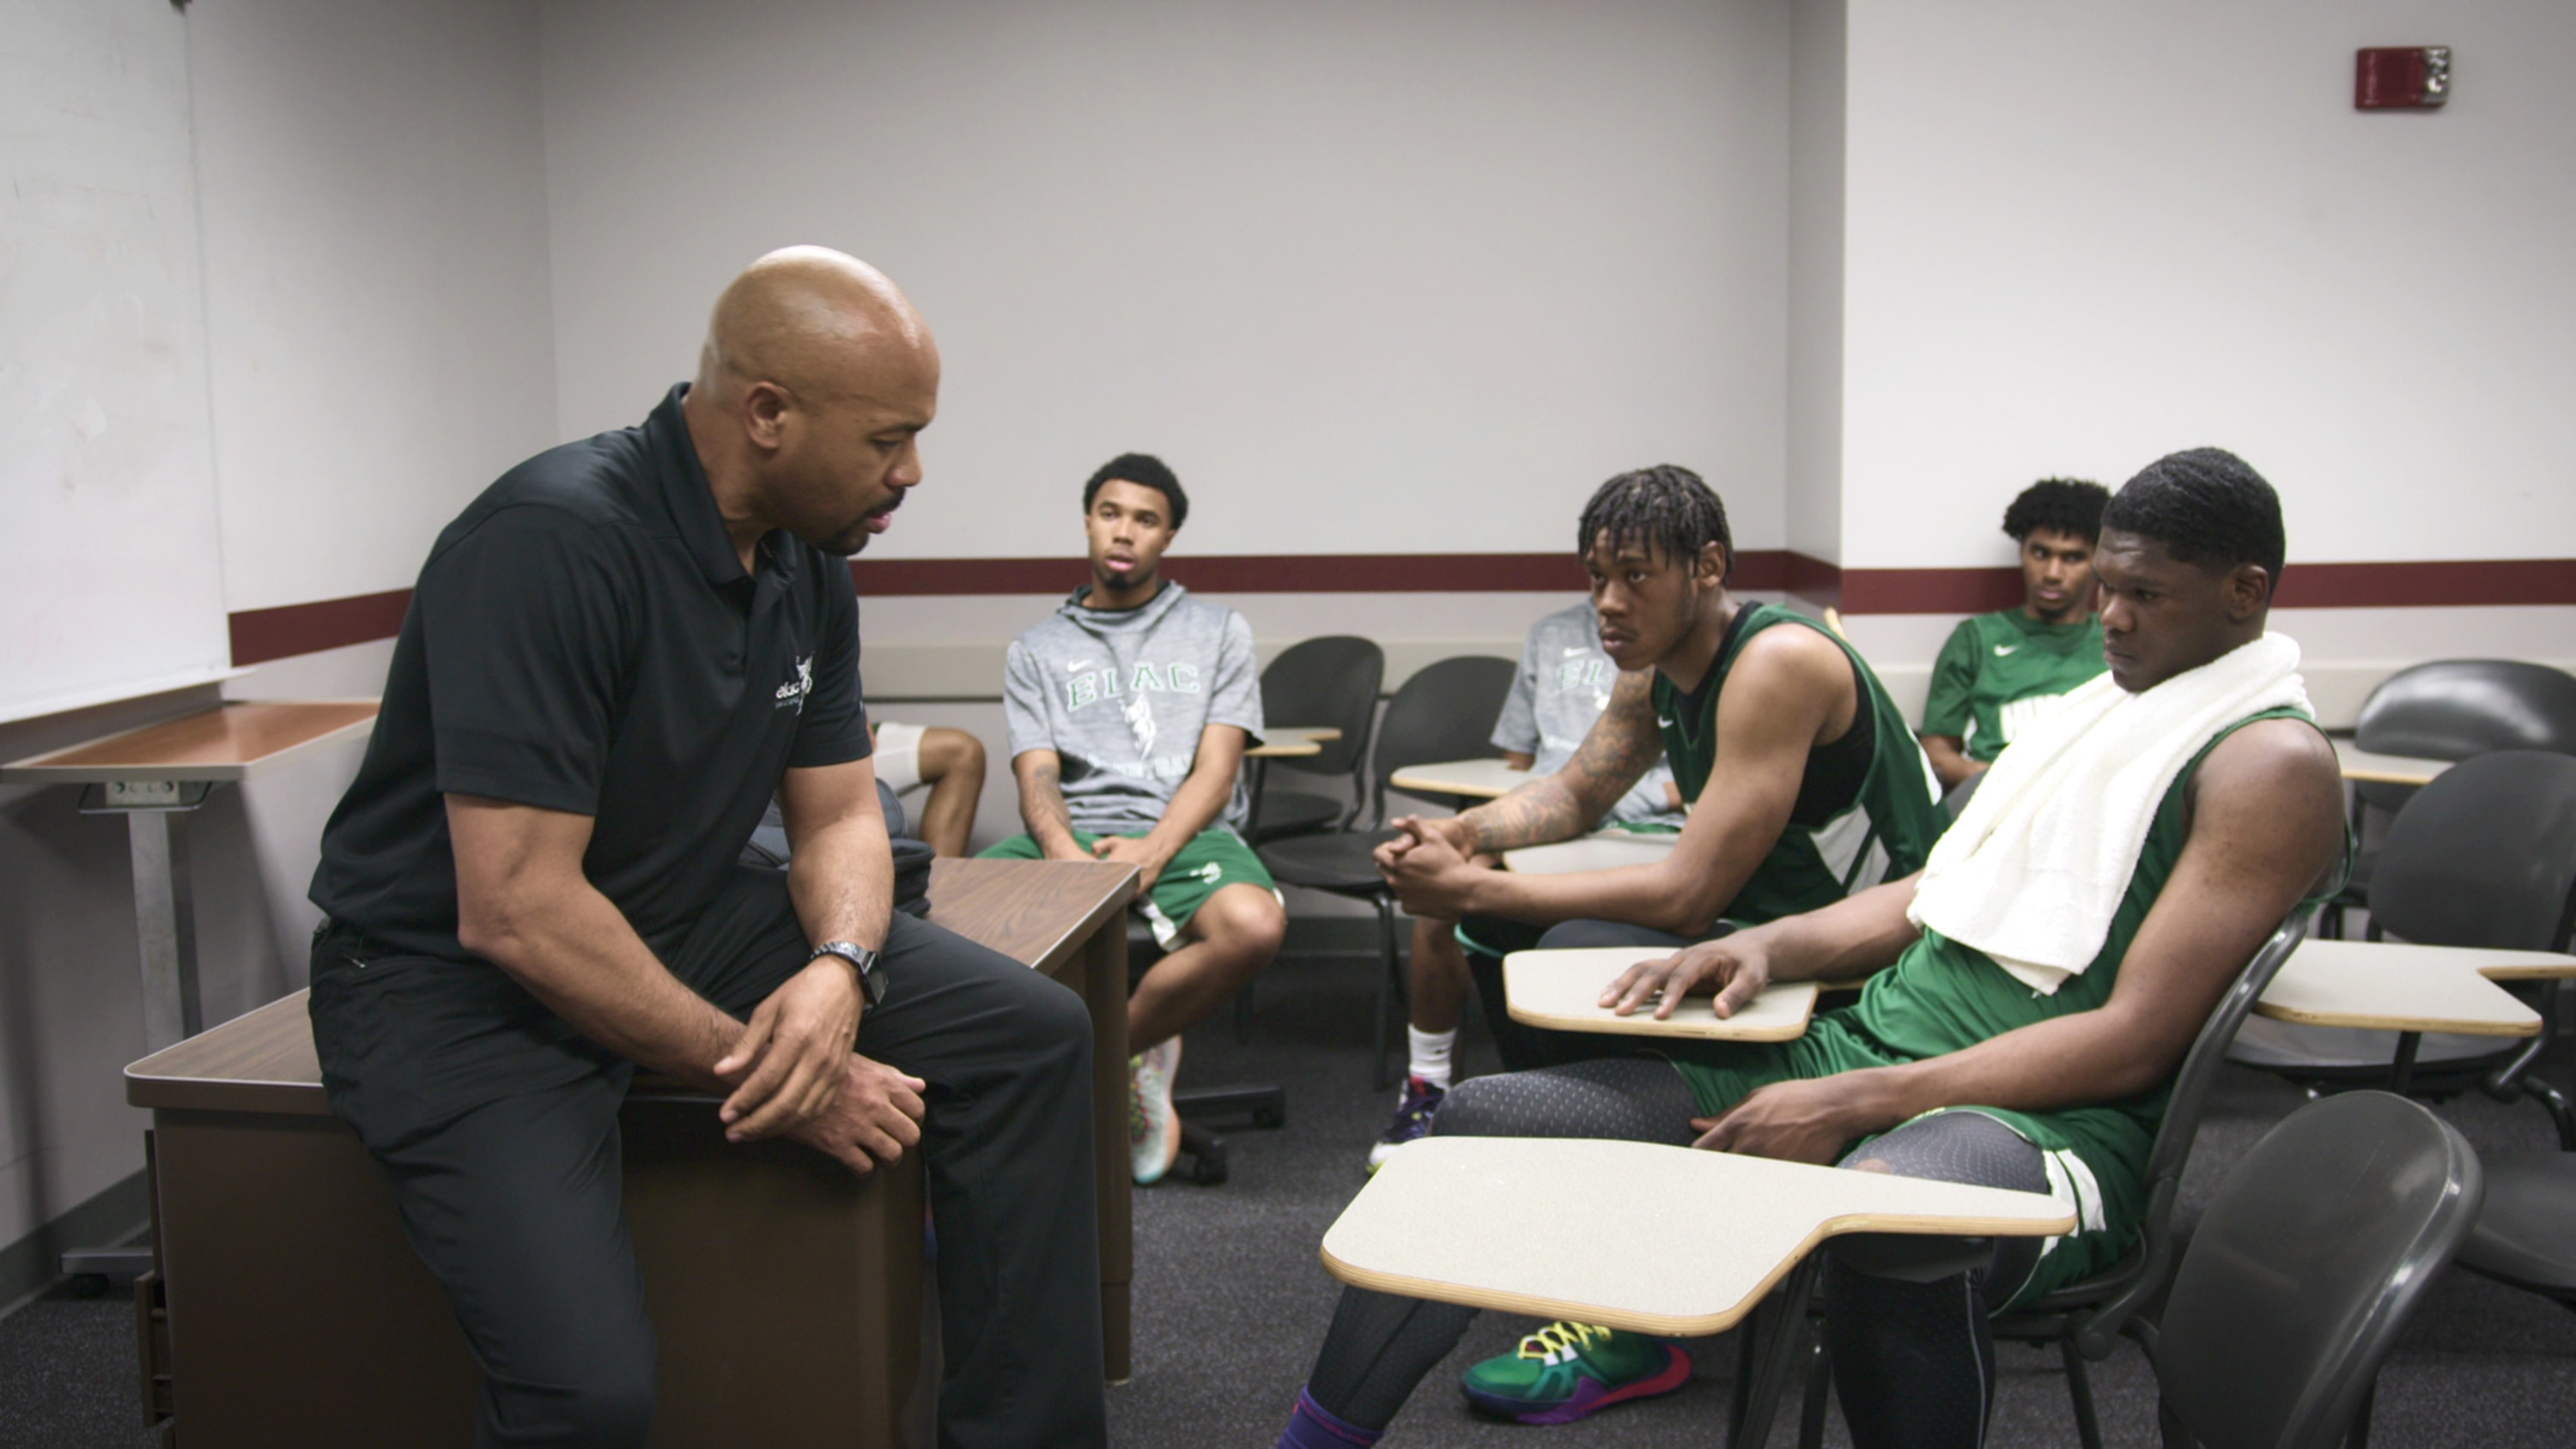 Basketball players sitting at desks in a room with a coach